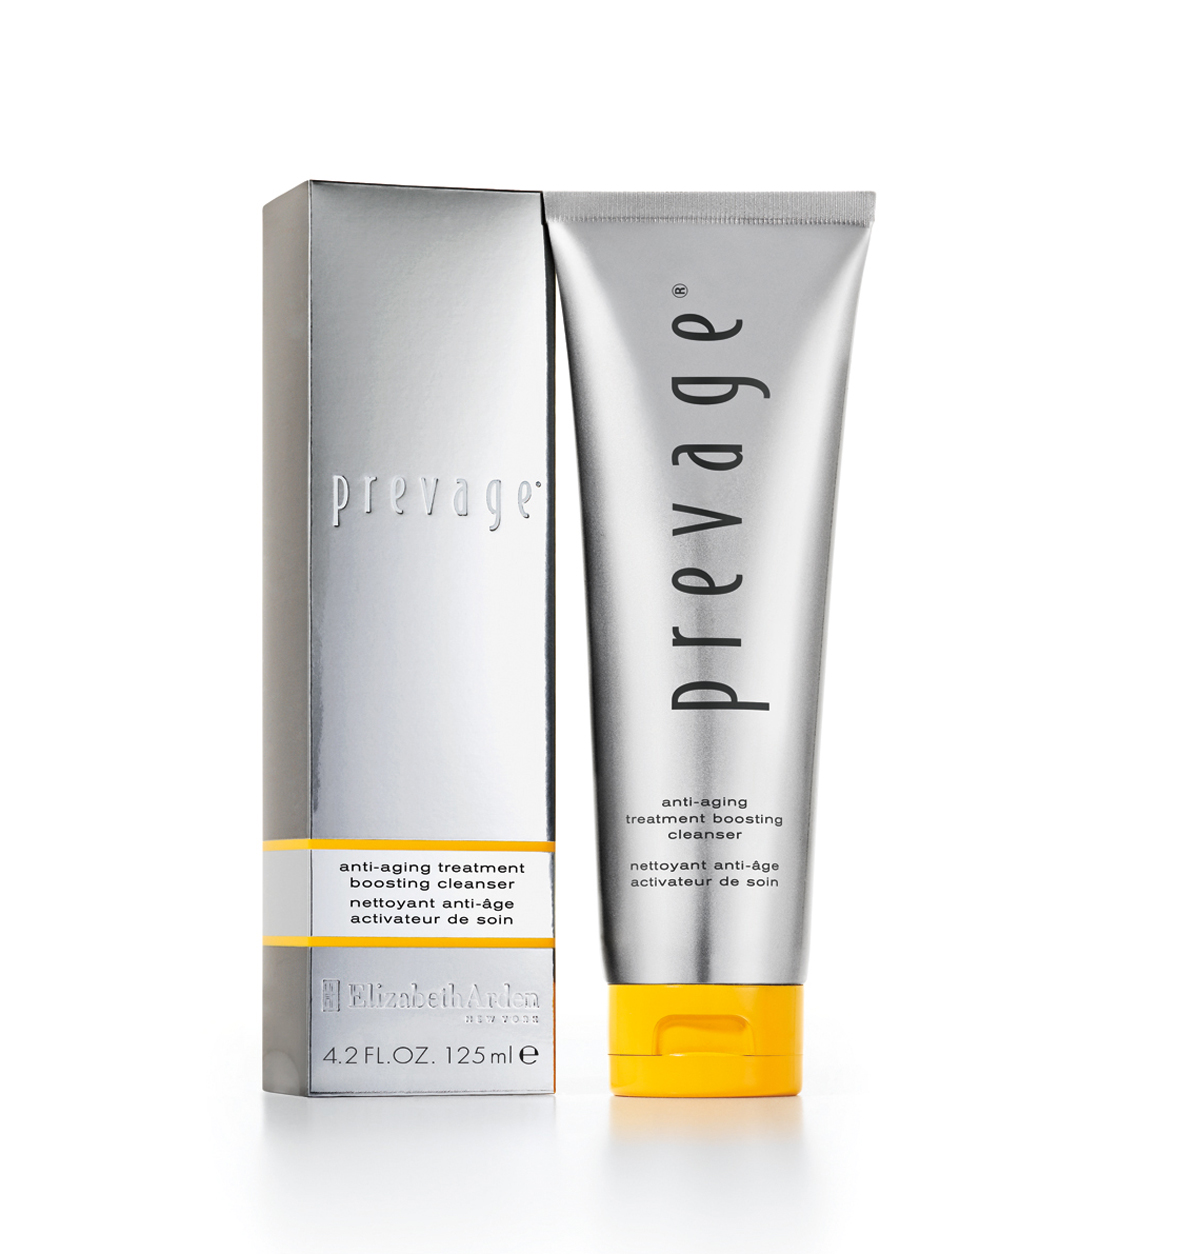 Prevage cleanser with carton_Elizabeth Arden